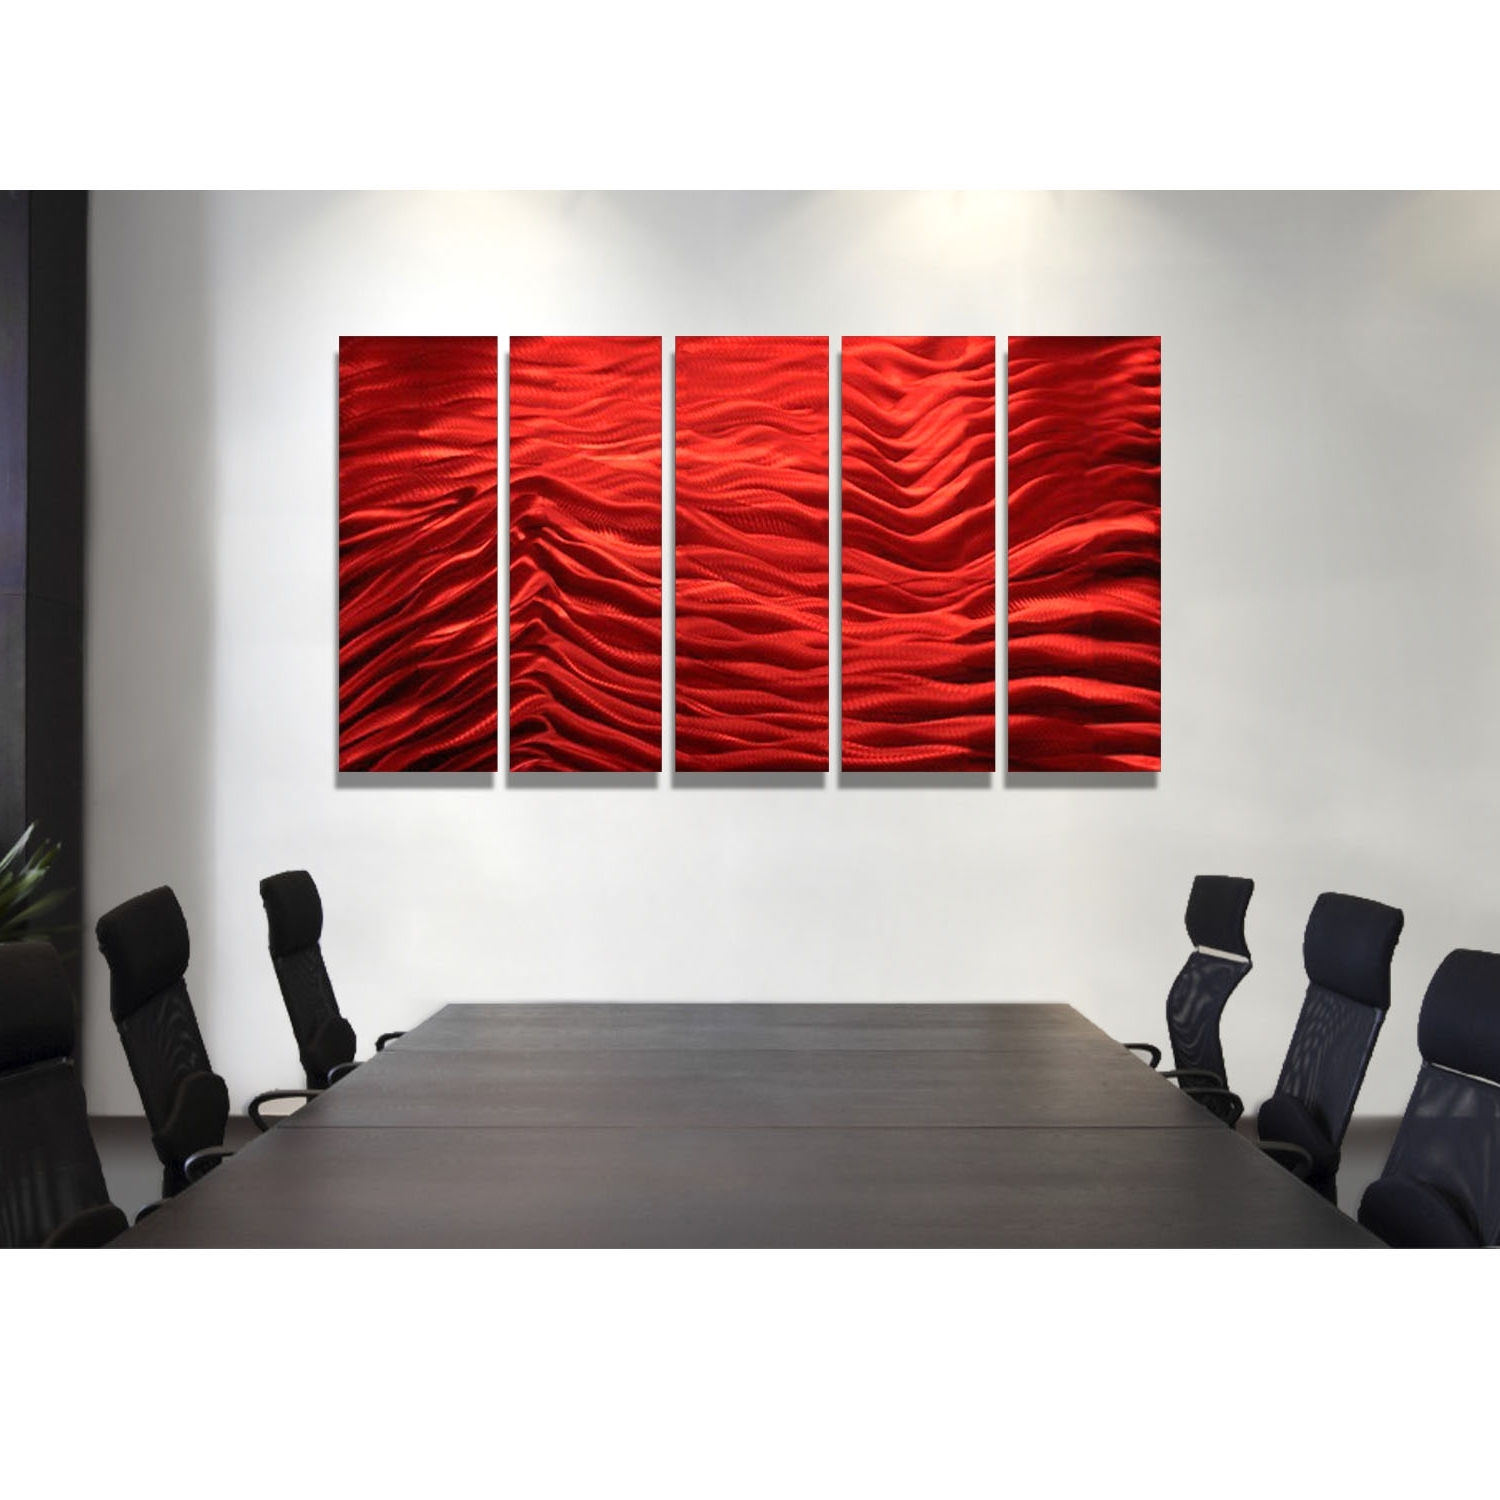 Most Current Red Inertia – Red Metal Wall Art – 5 Panel Wall Décorjon Allen For Panel Wall Art (View 6 of 15)